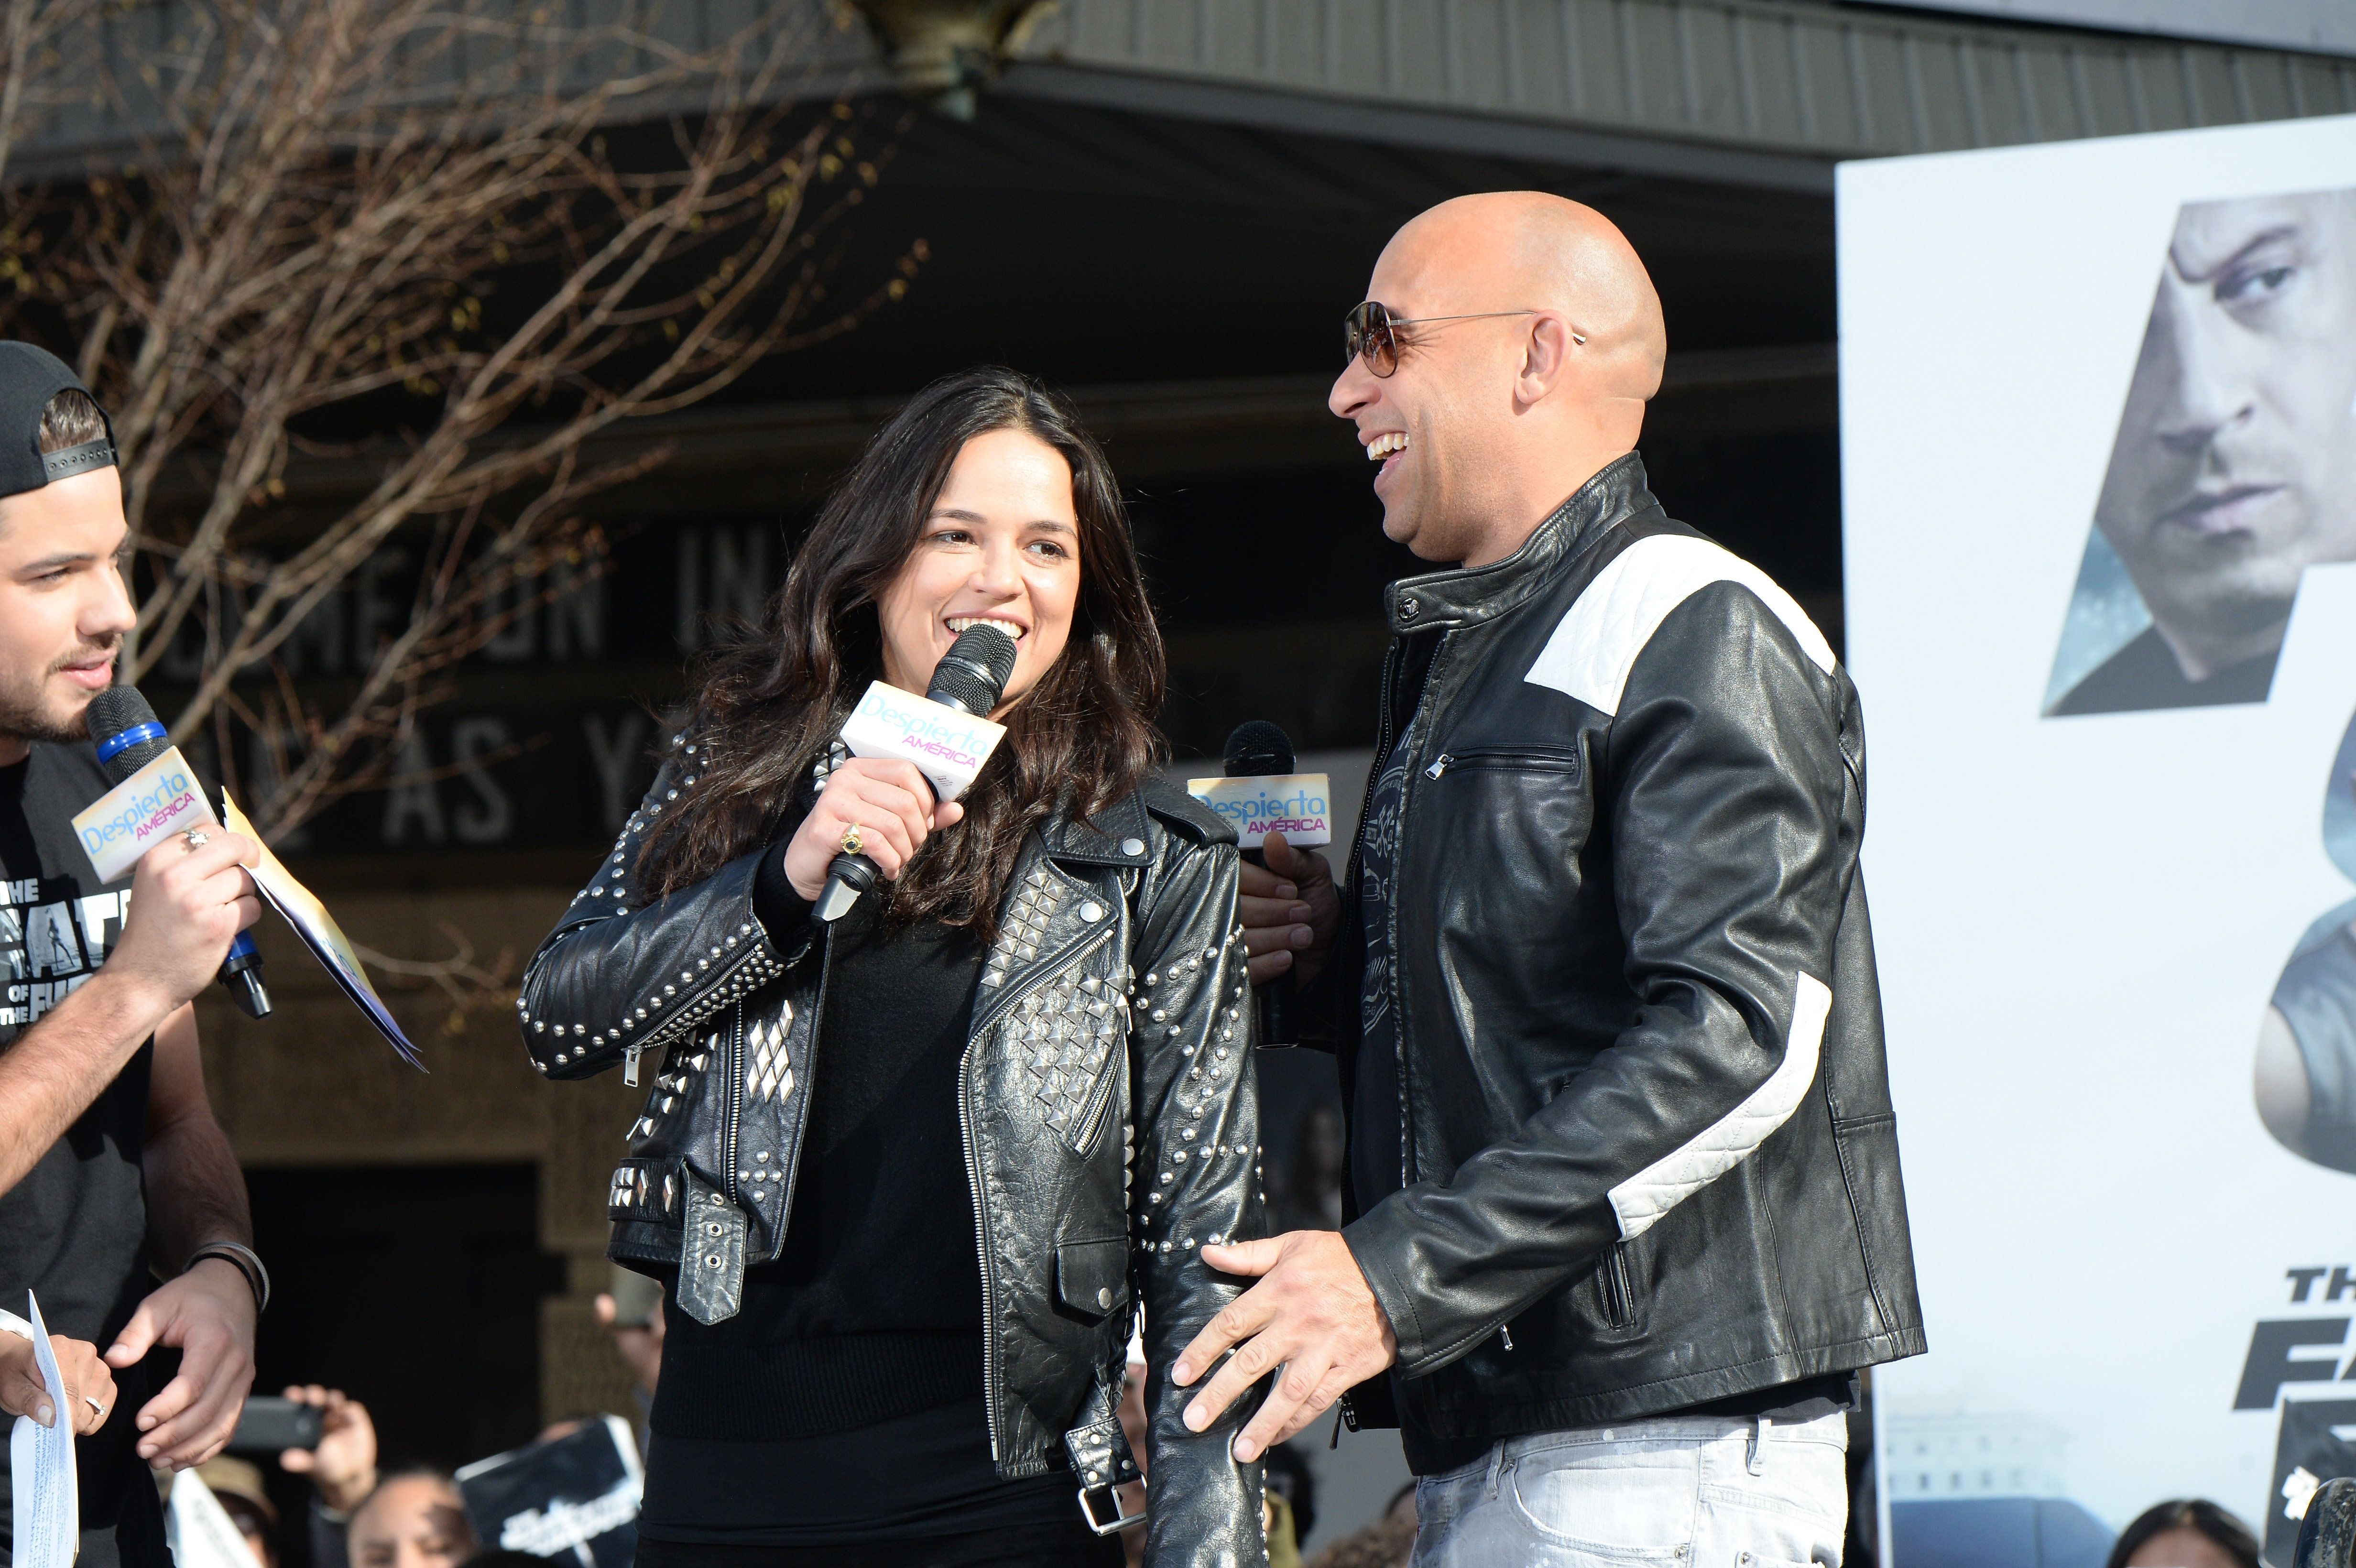 Vin Diesel Weighs In On Co-star's Push For Women To Be Treated